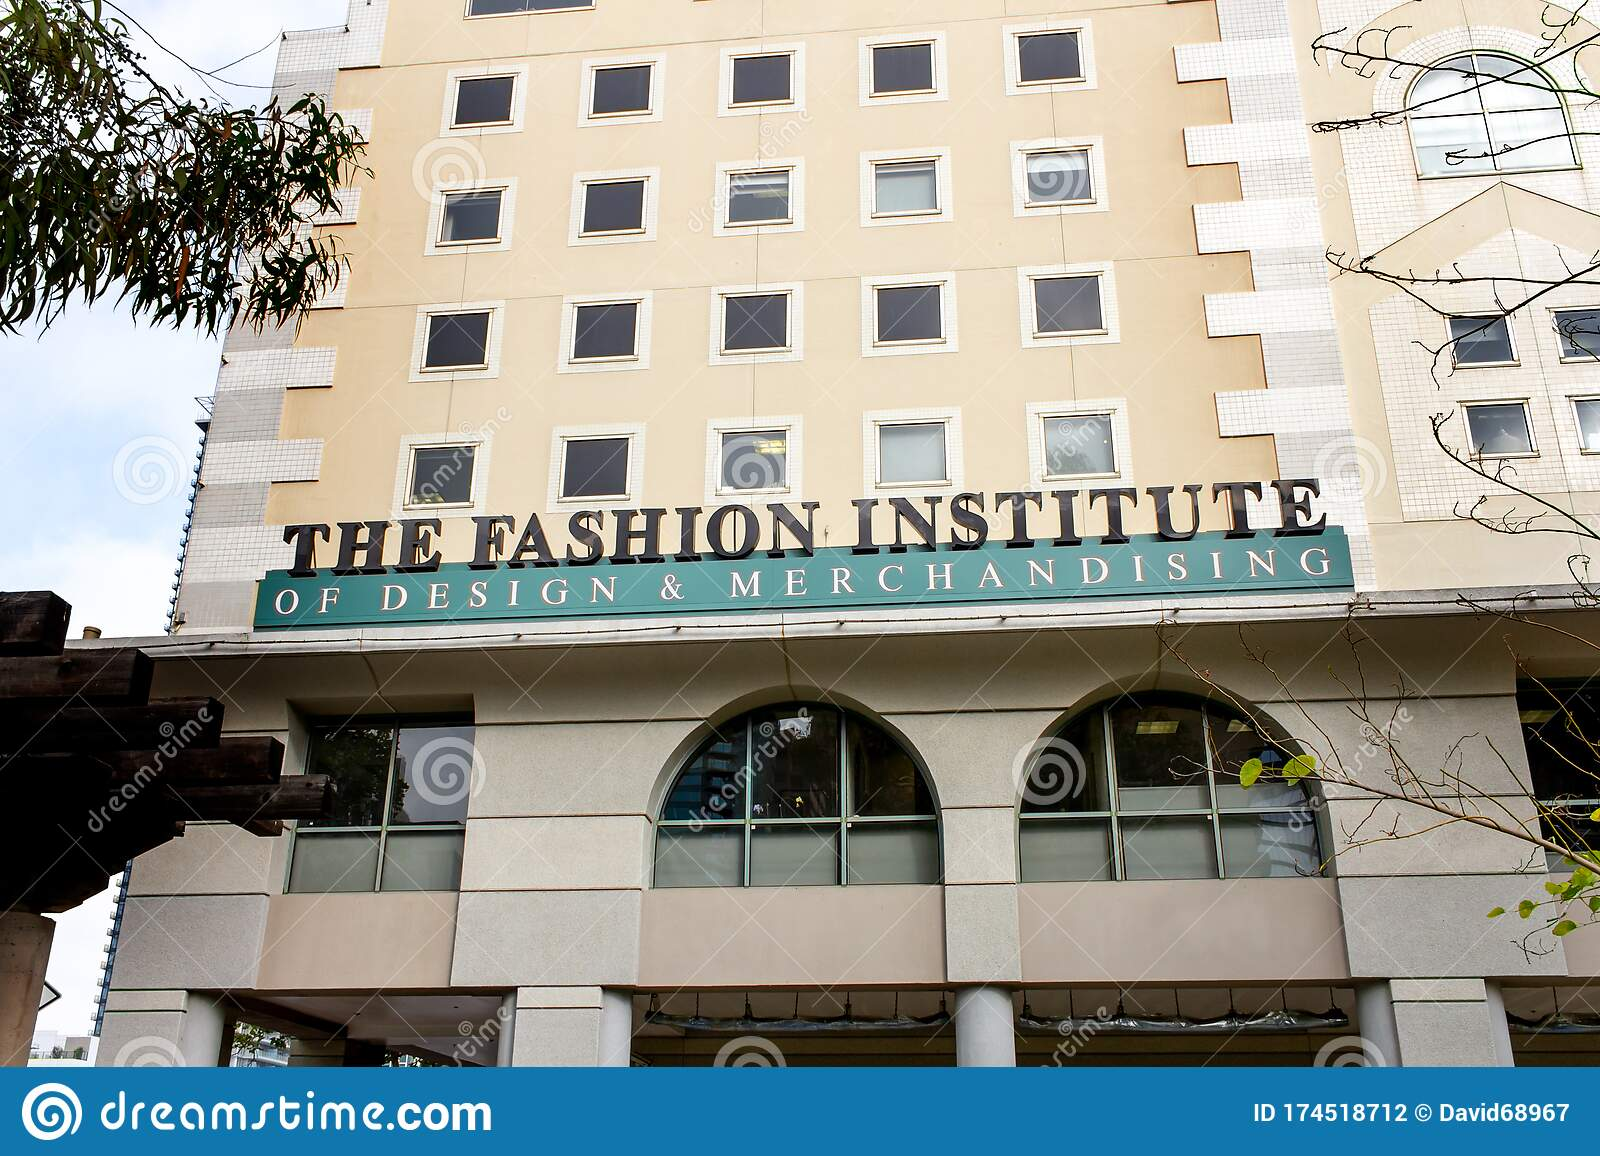 Fidm Building Editorial Photography Image Of Learn 174518712